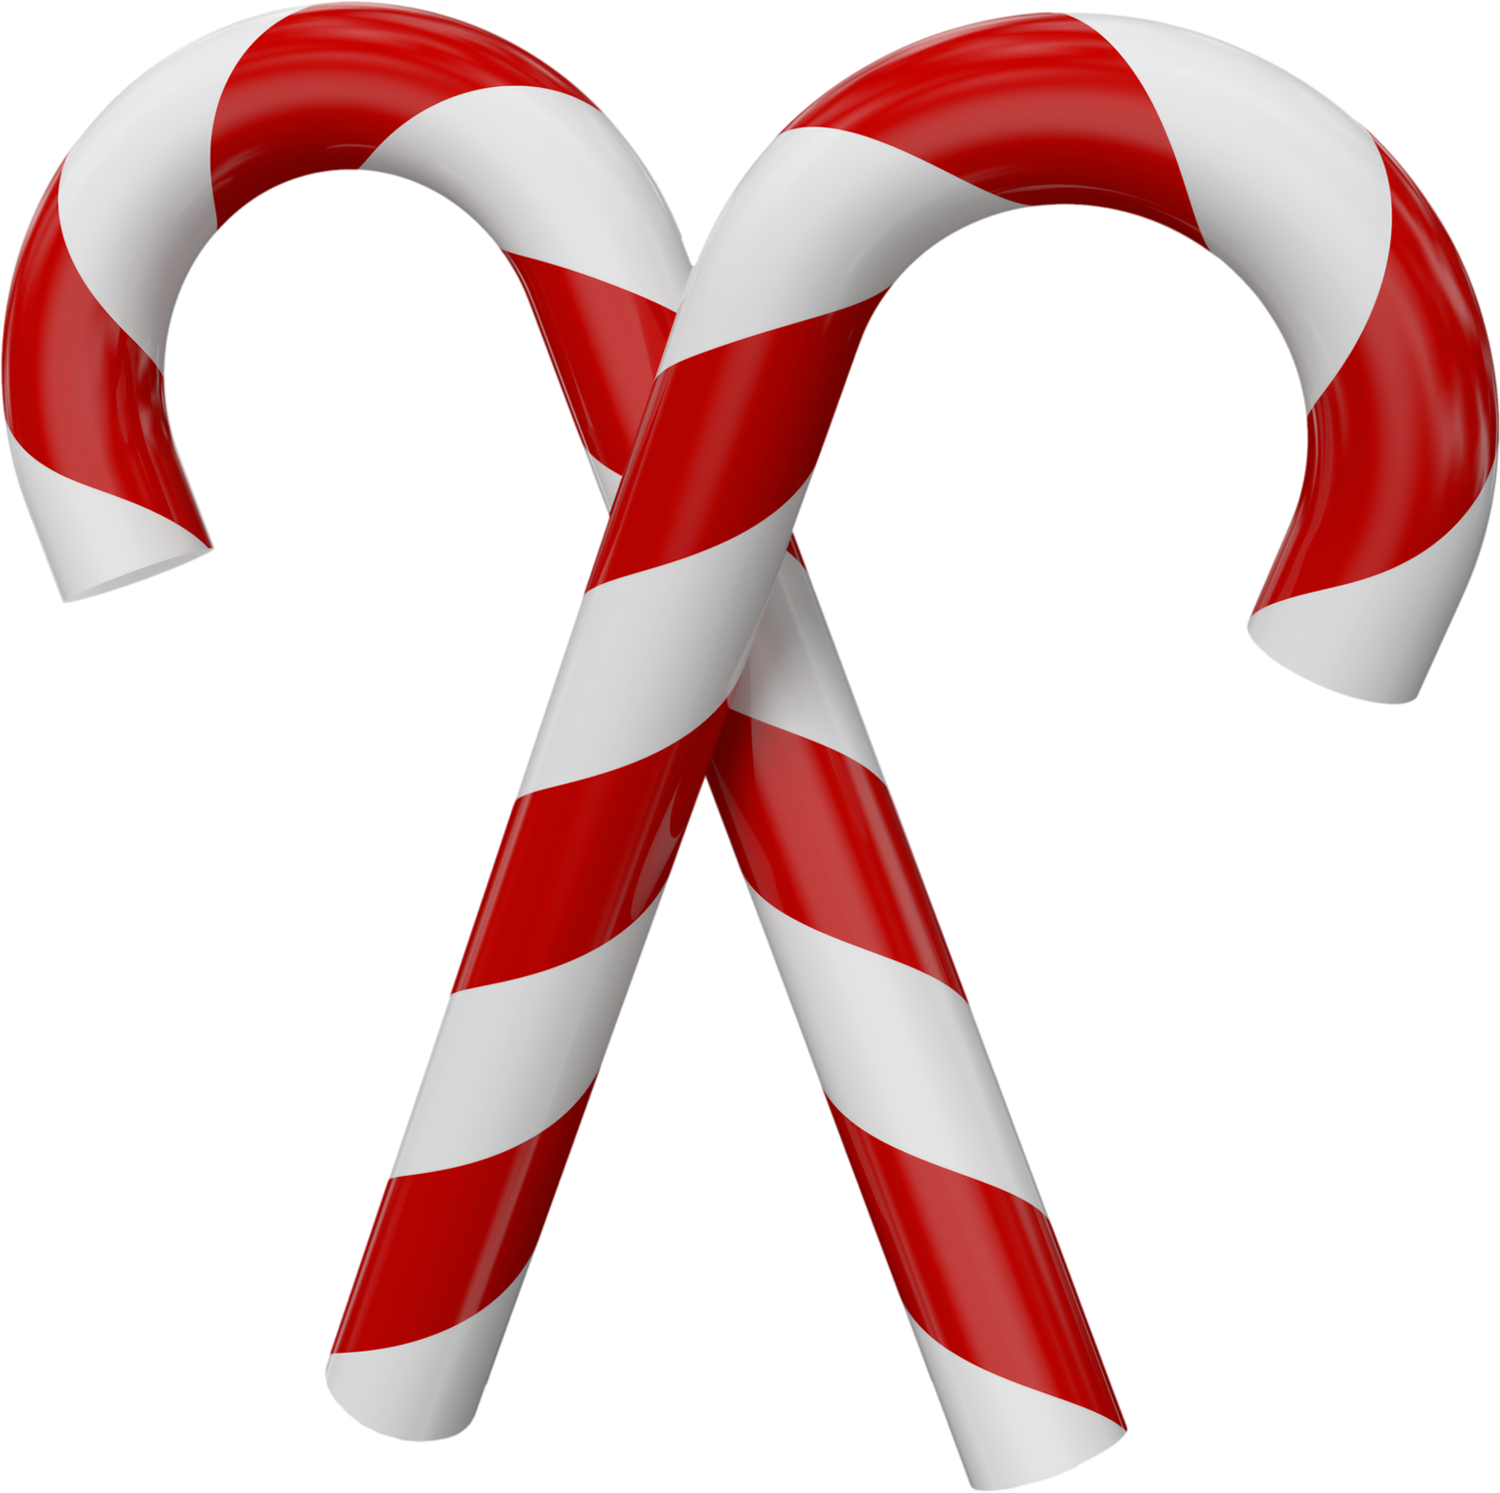 Large_Transparent_Christmas_Candy_Canes.png (1500×1493 ...